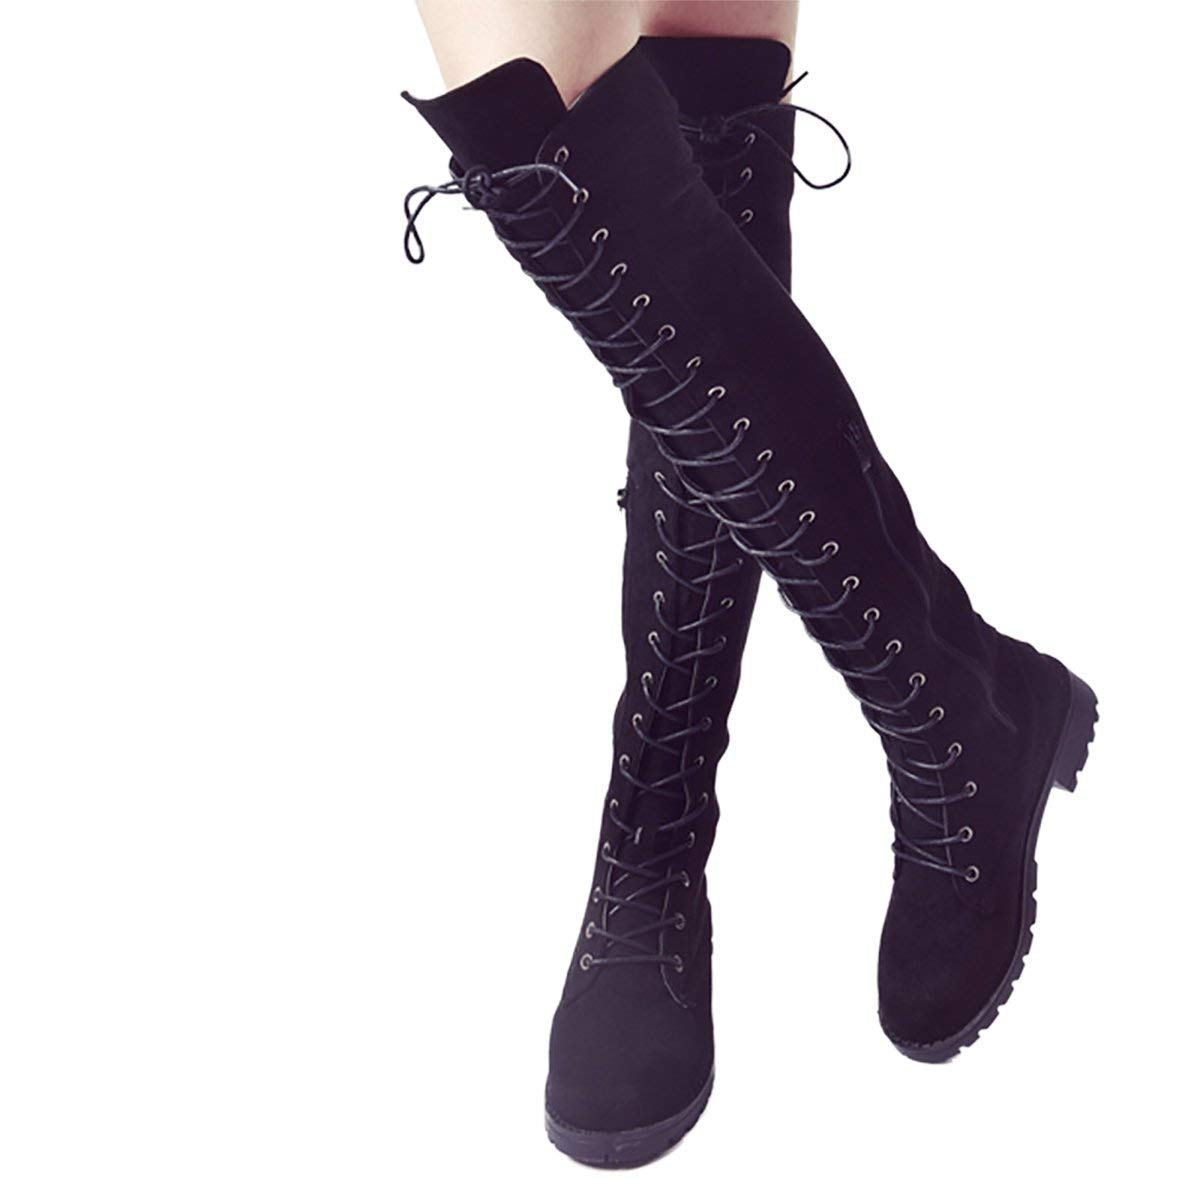 KAOKAOO Womens Over The Knee Pull On Boots Thigh High Low Heel Faux Suede Lace Up Wide Calf Boots